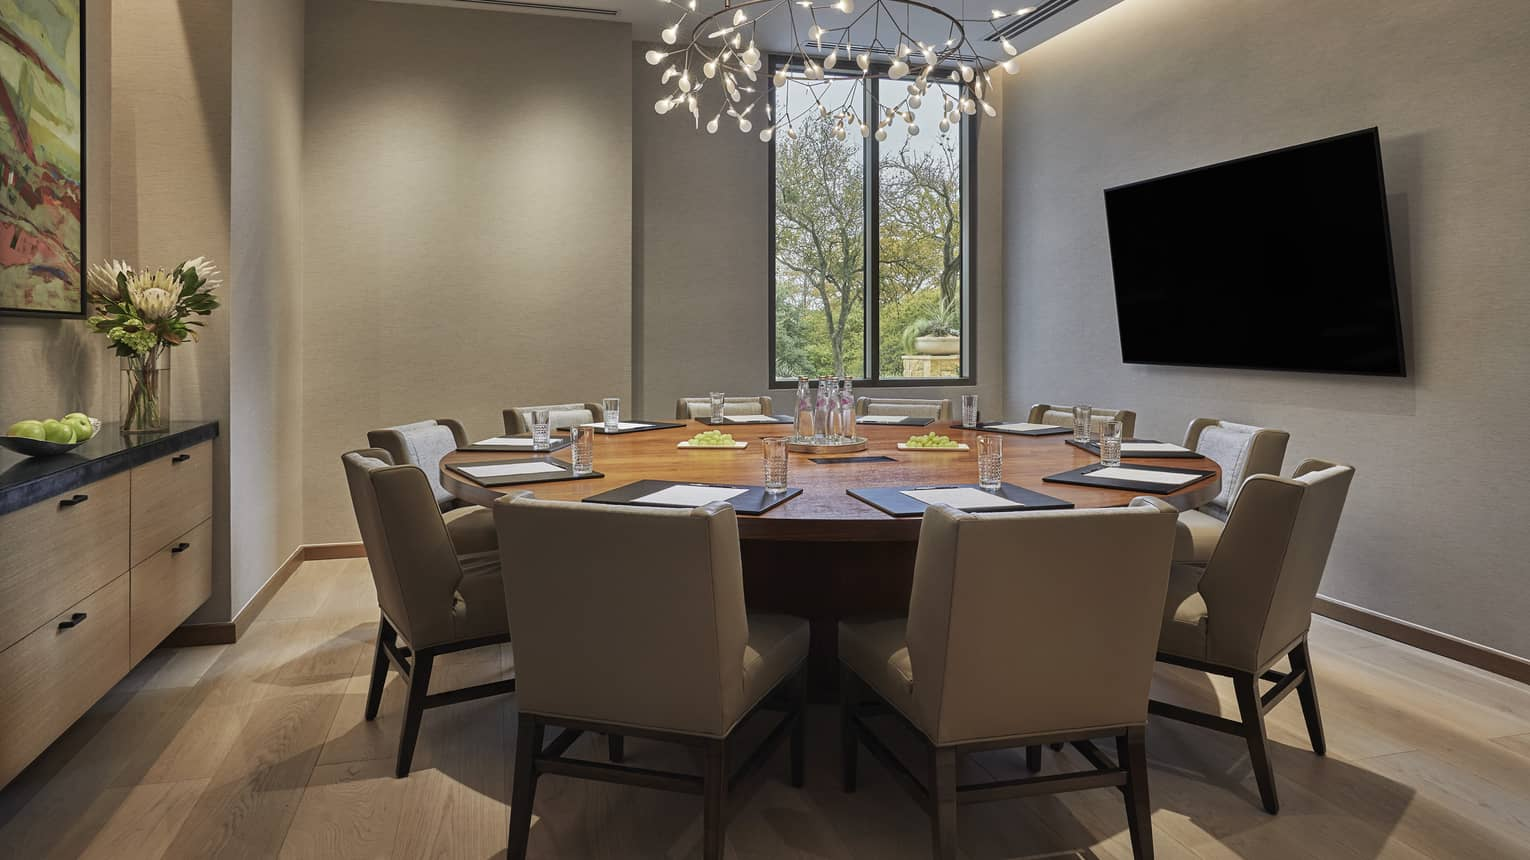 Shoal Creek meeting room with small round table, large chairs, screen